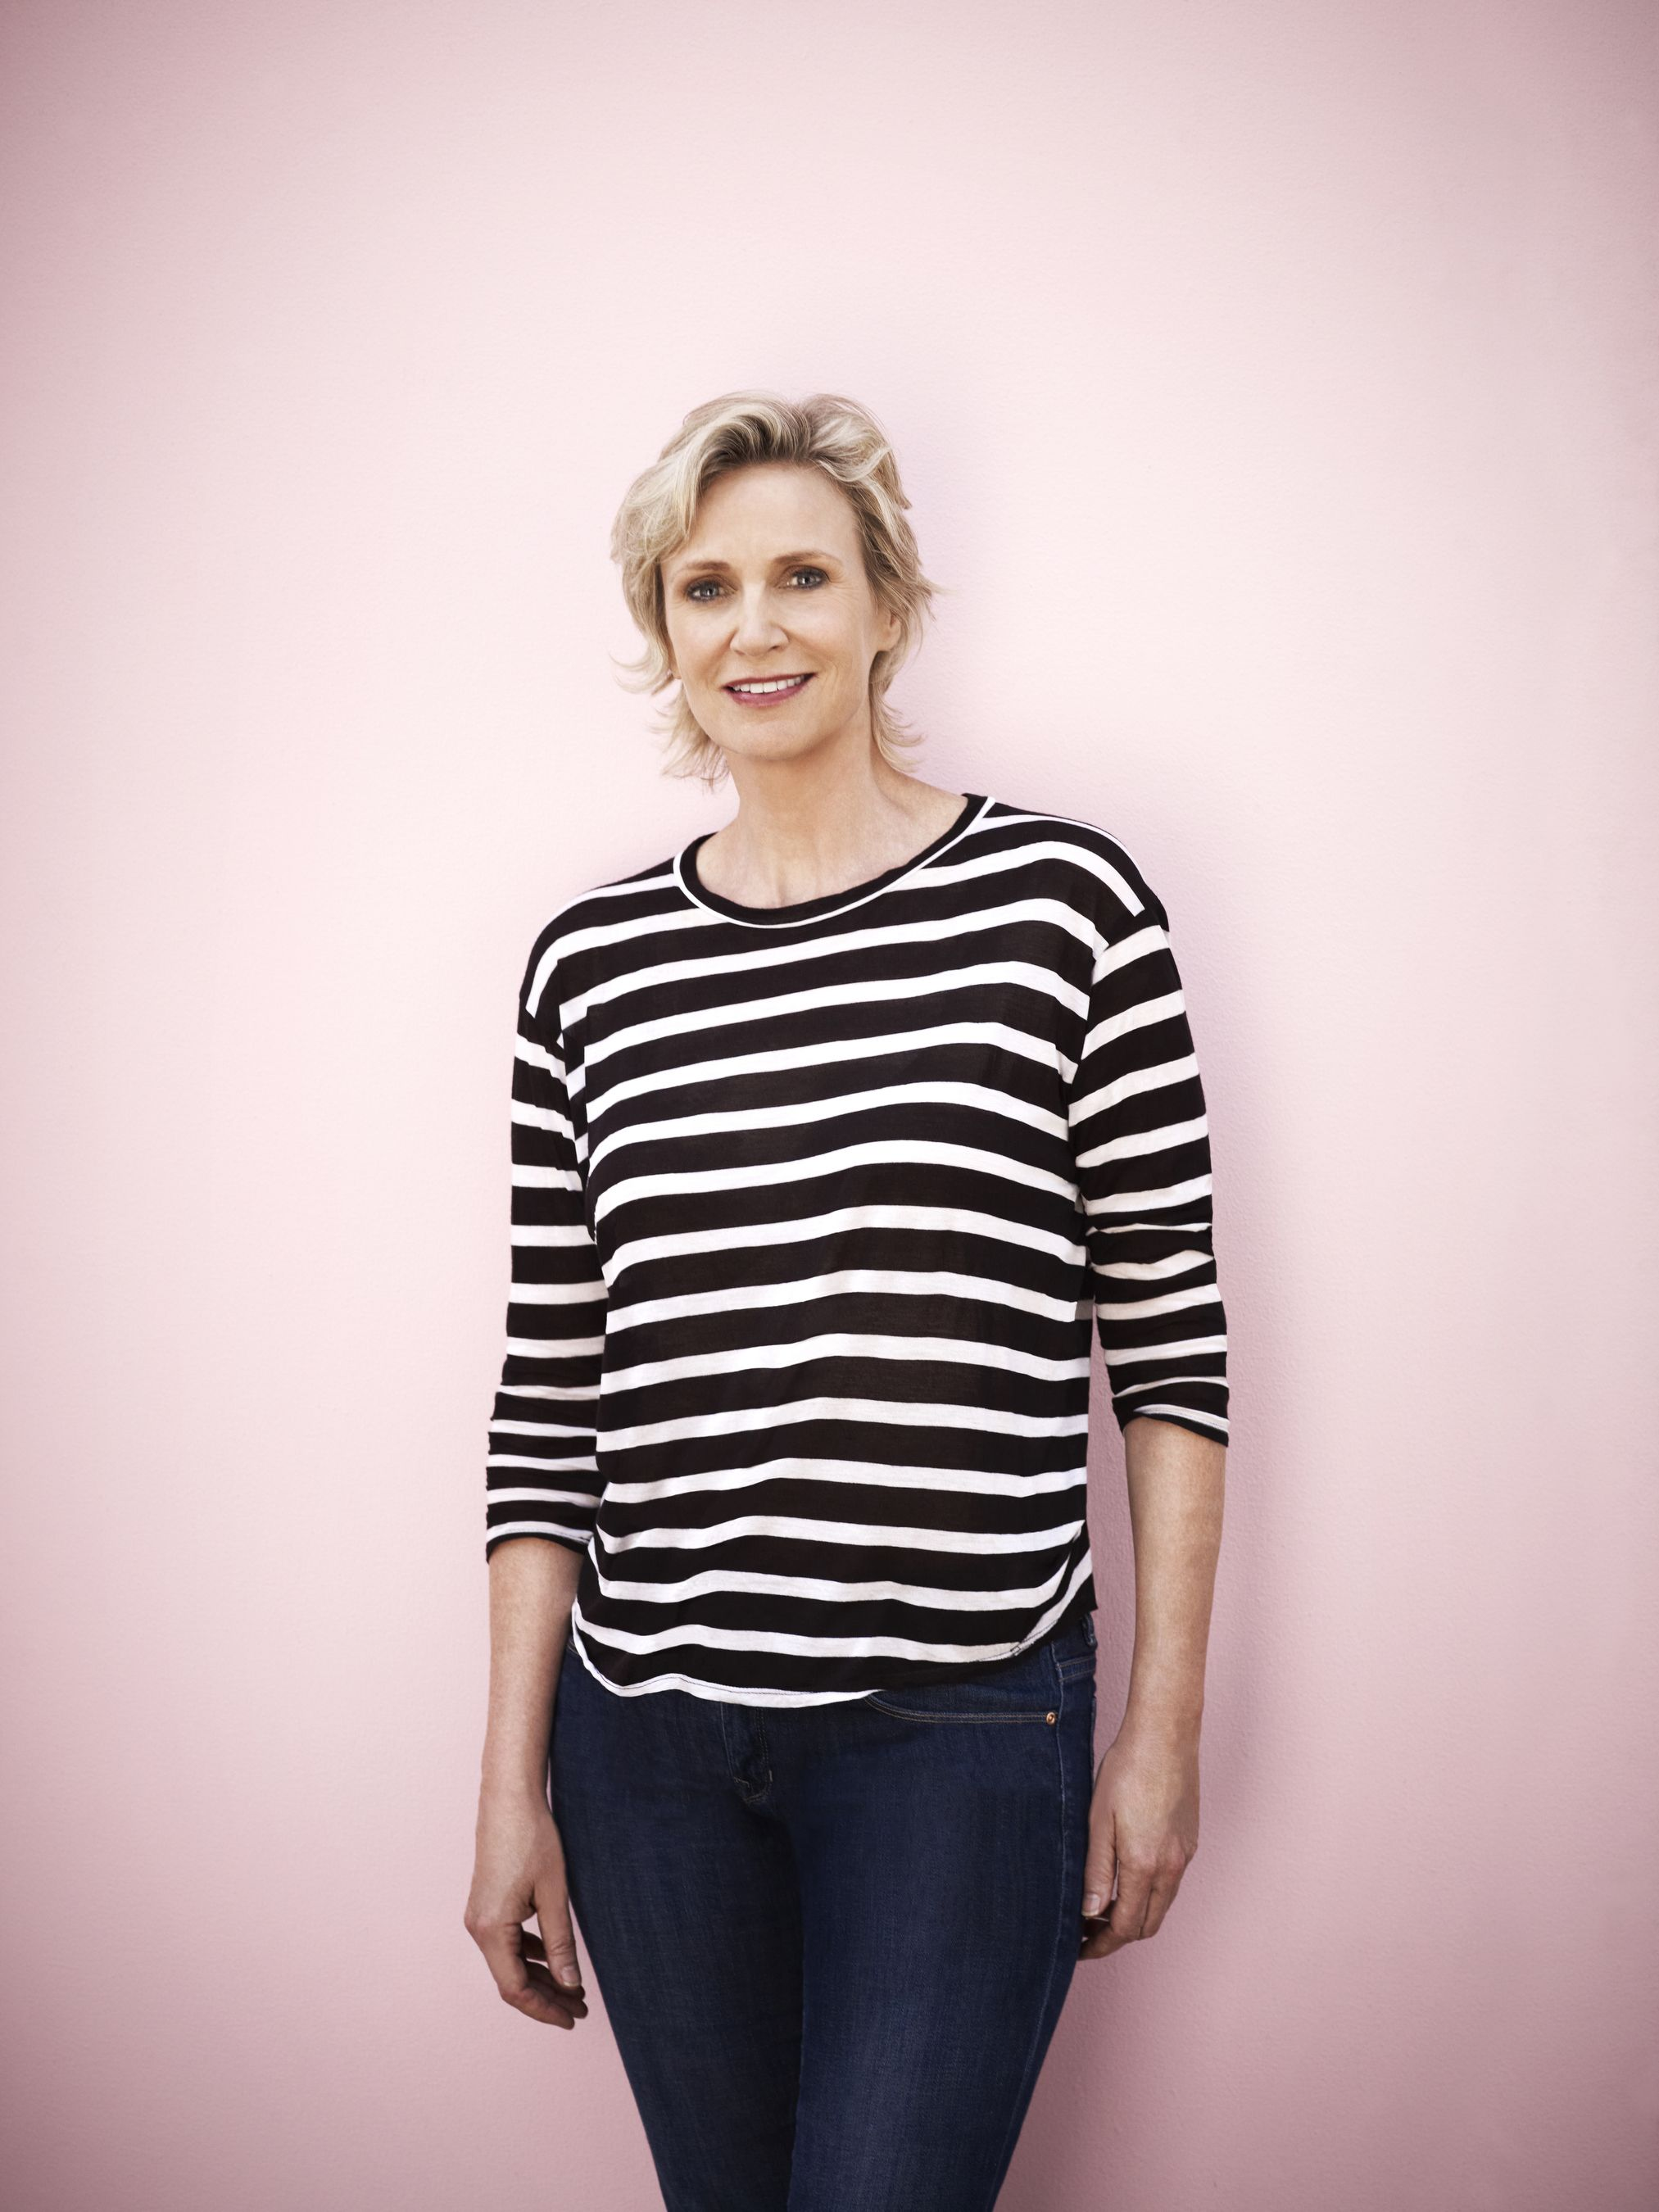 2012 Faces of Fox Campaign - Jane Lynch